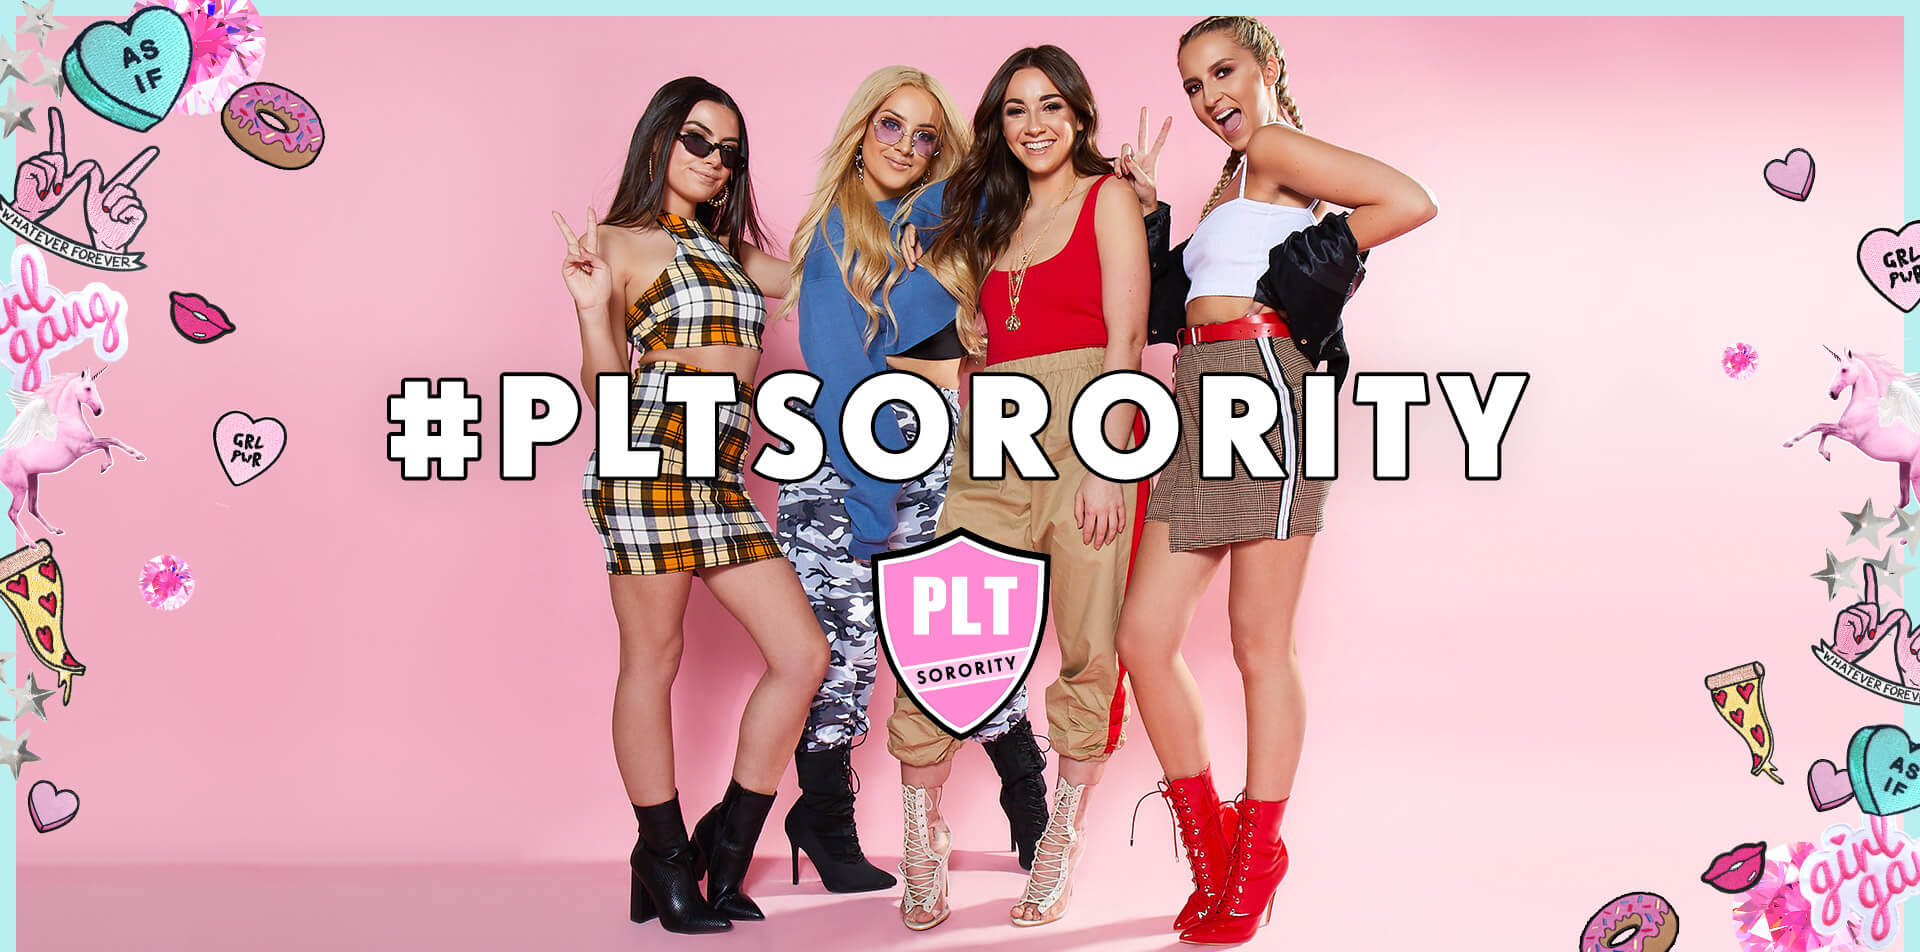 plt sorority header desktop